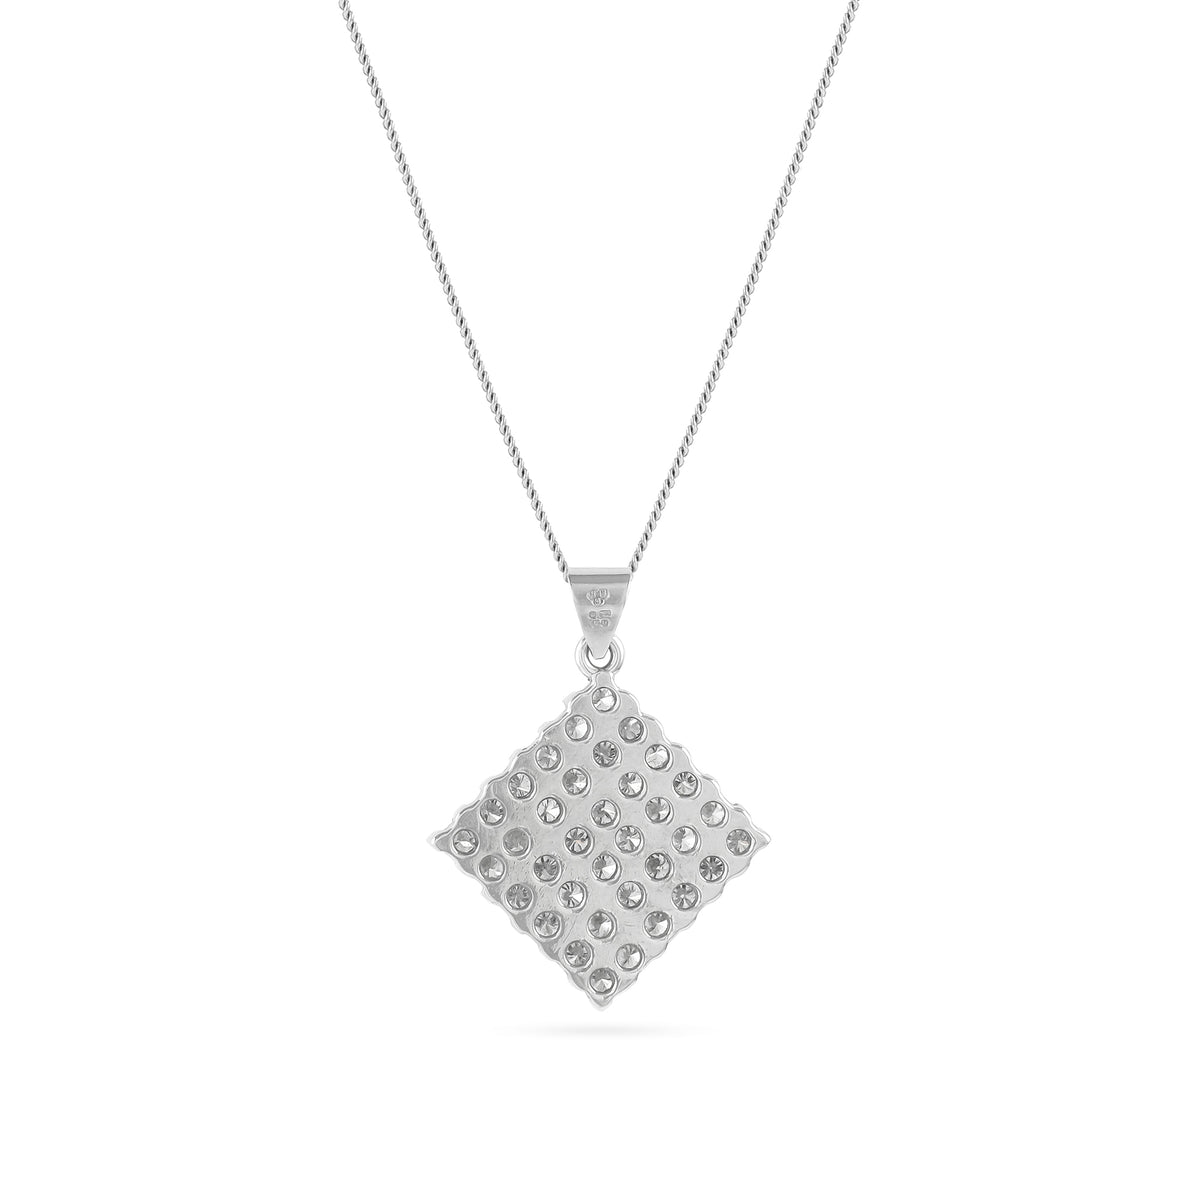 Vintage 18ct White Gold Diamond Pendant